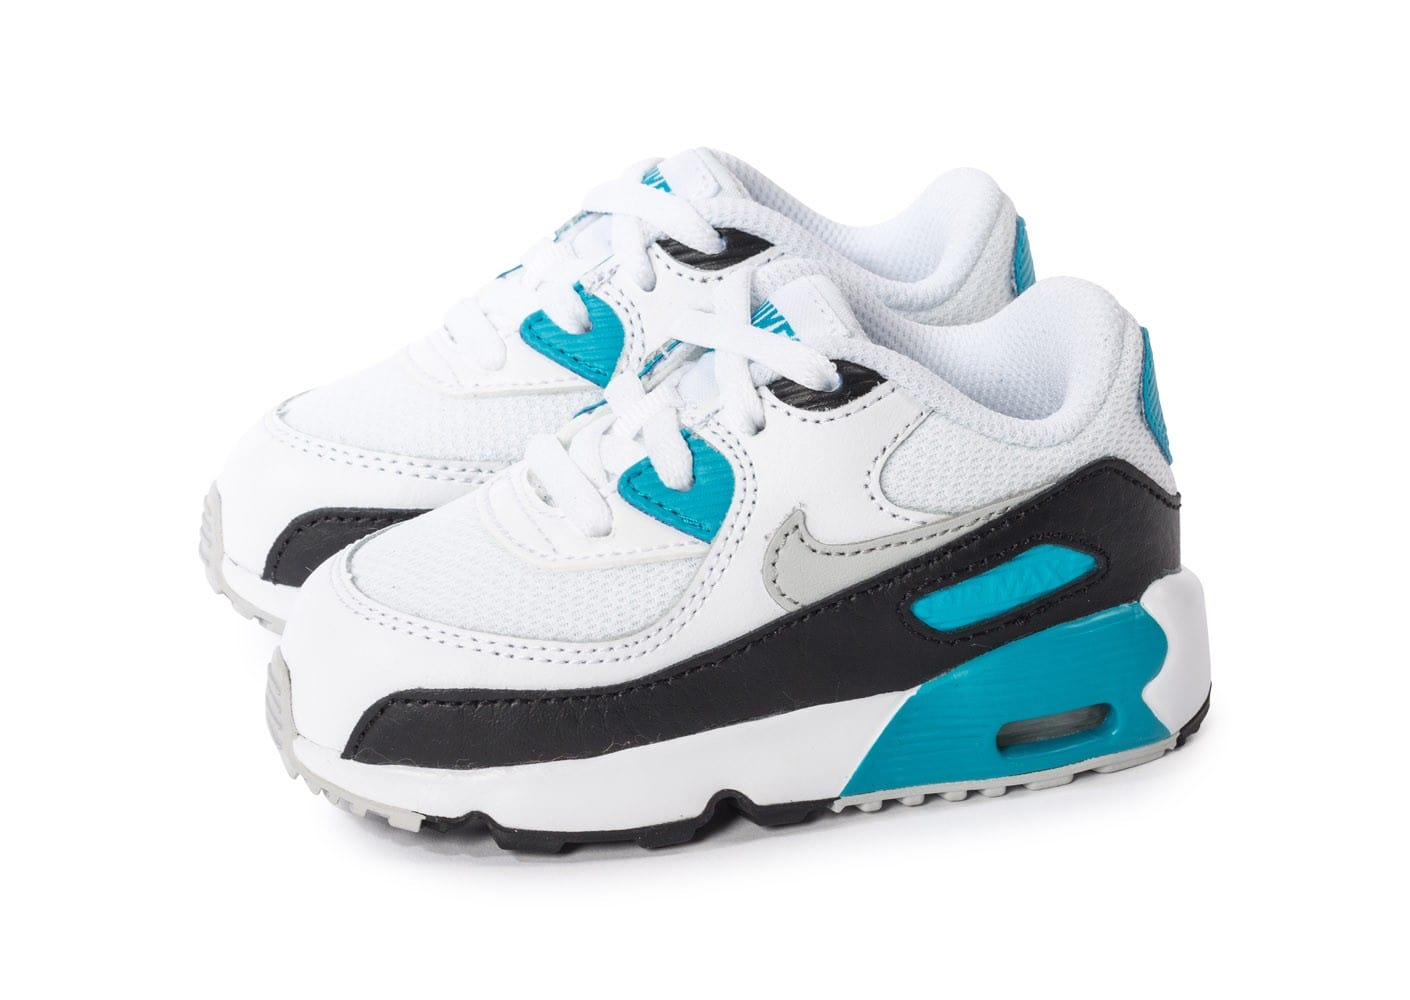 nike air max 90 mesh b b blanche et noire chaussures chaussures chausport. Black Bedroom Furniture Sets. Home Design Ideas